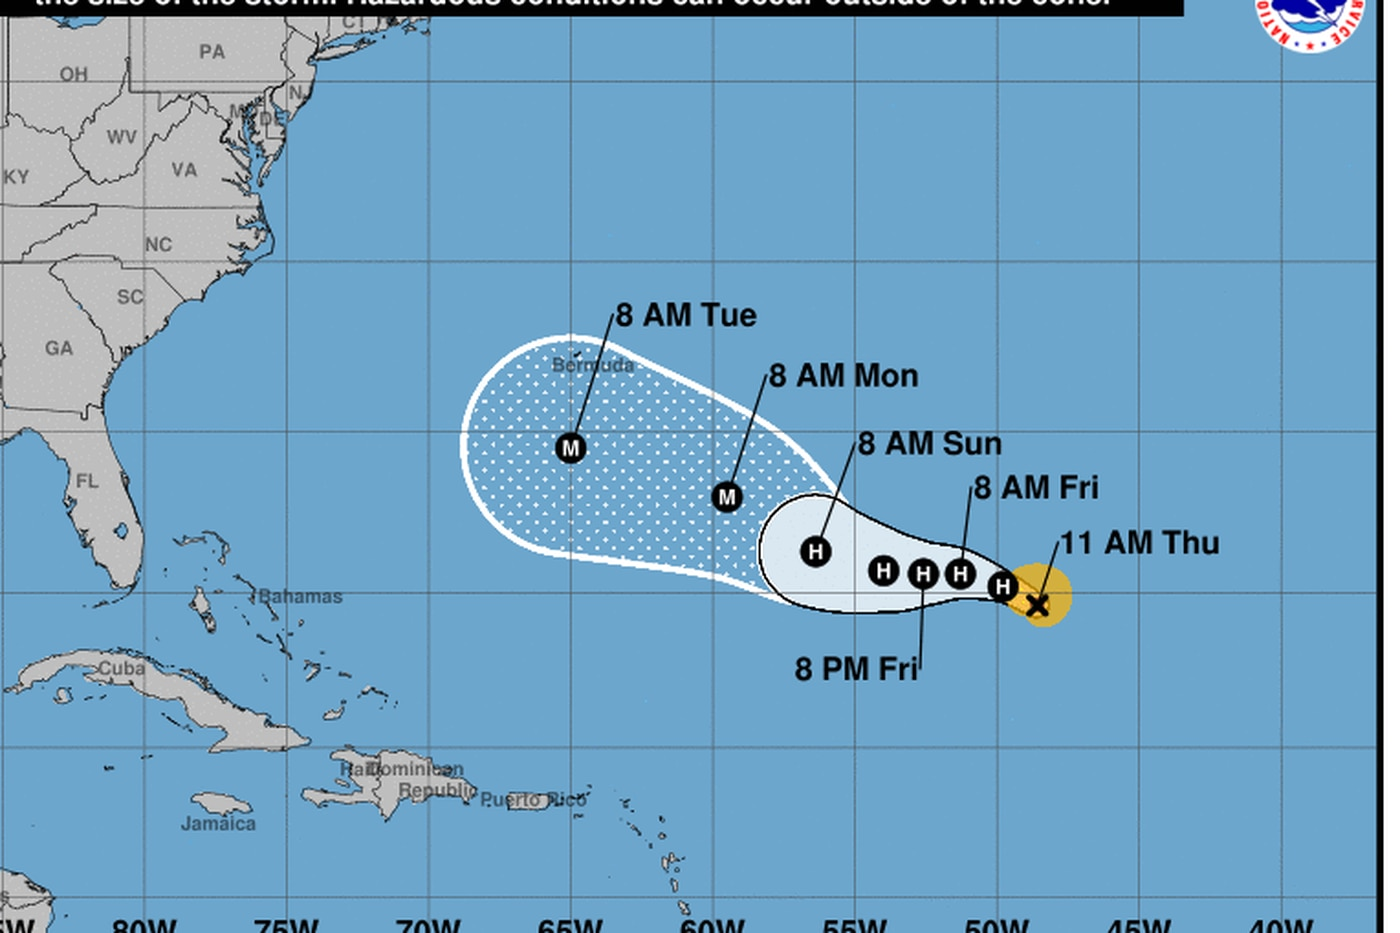 Tropical storm could cause life-threatening surf along East Coast